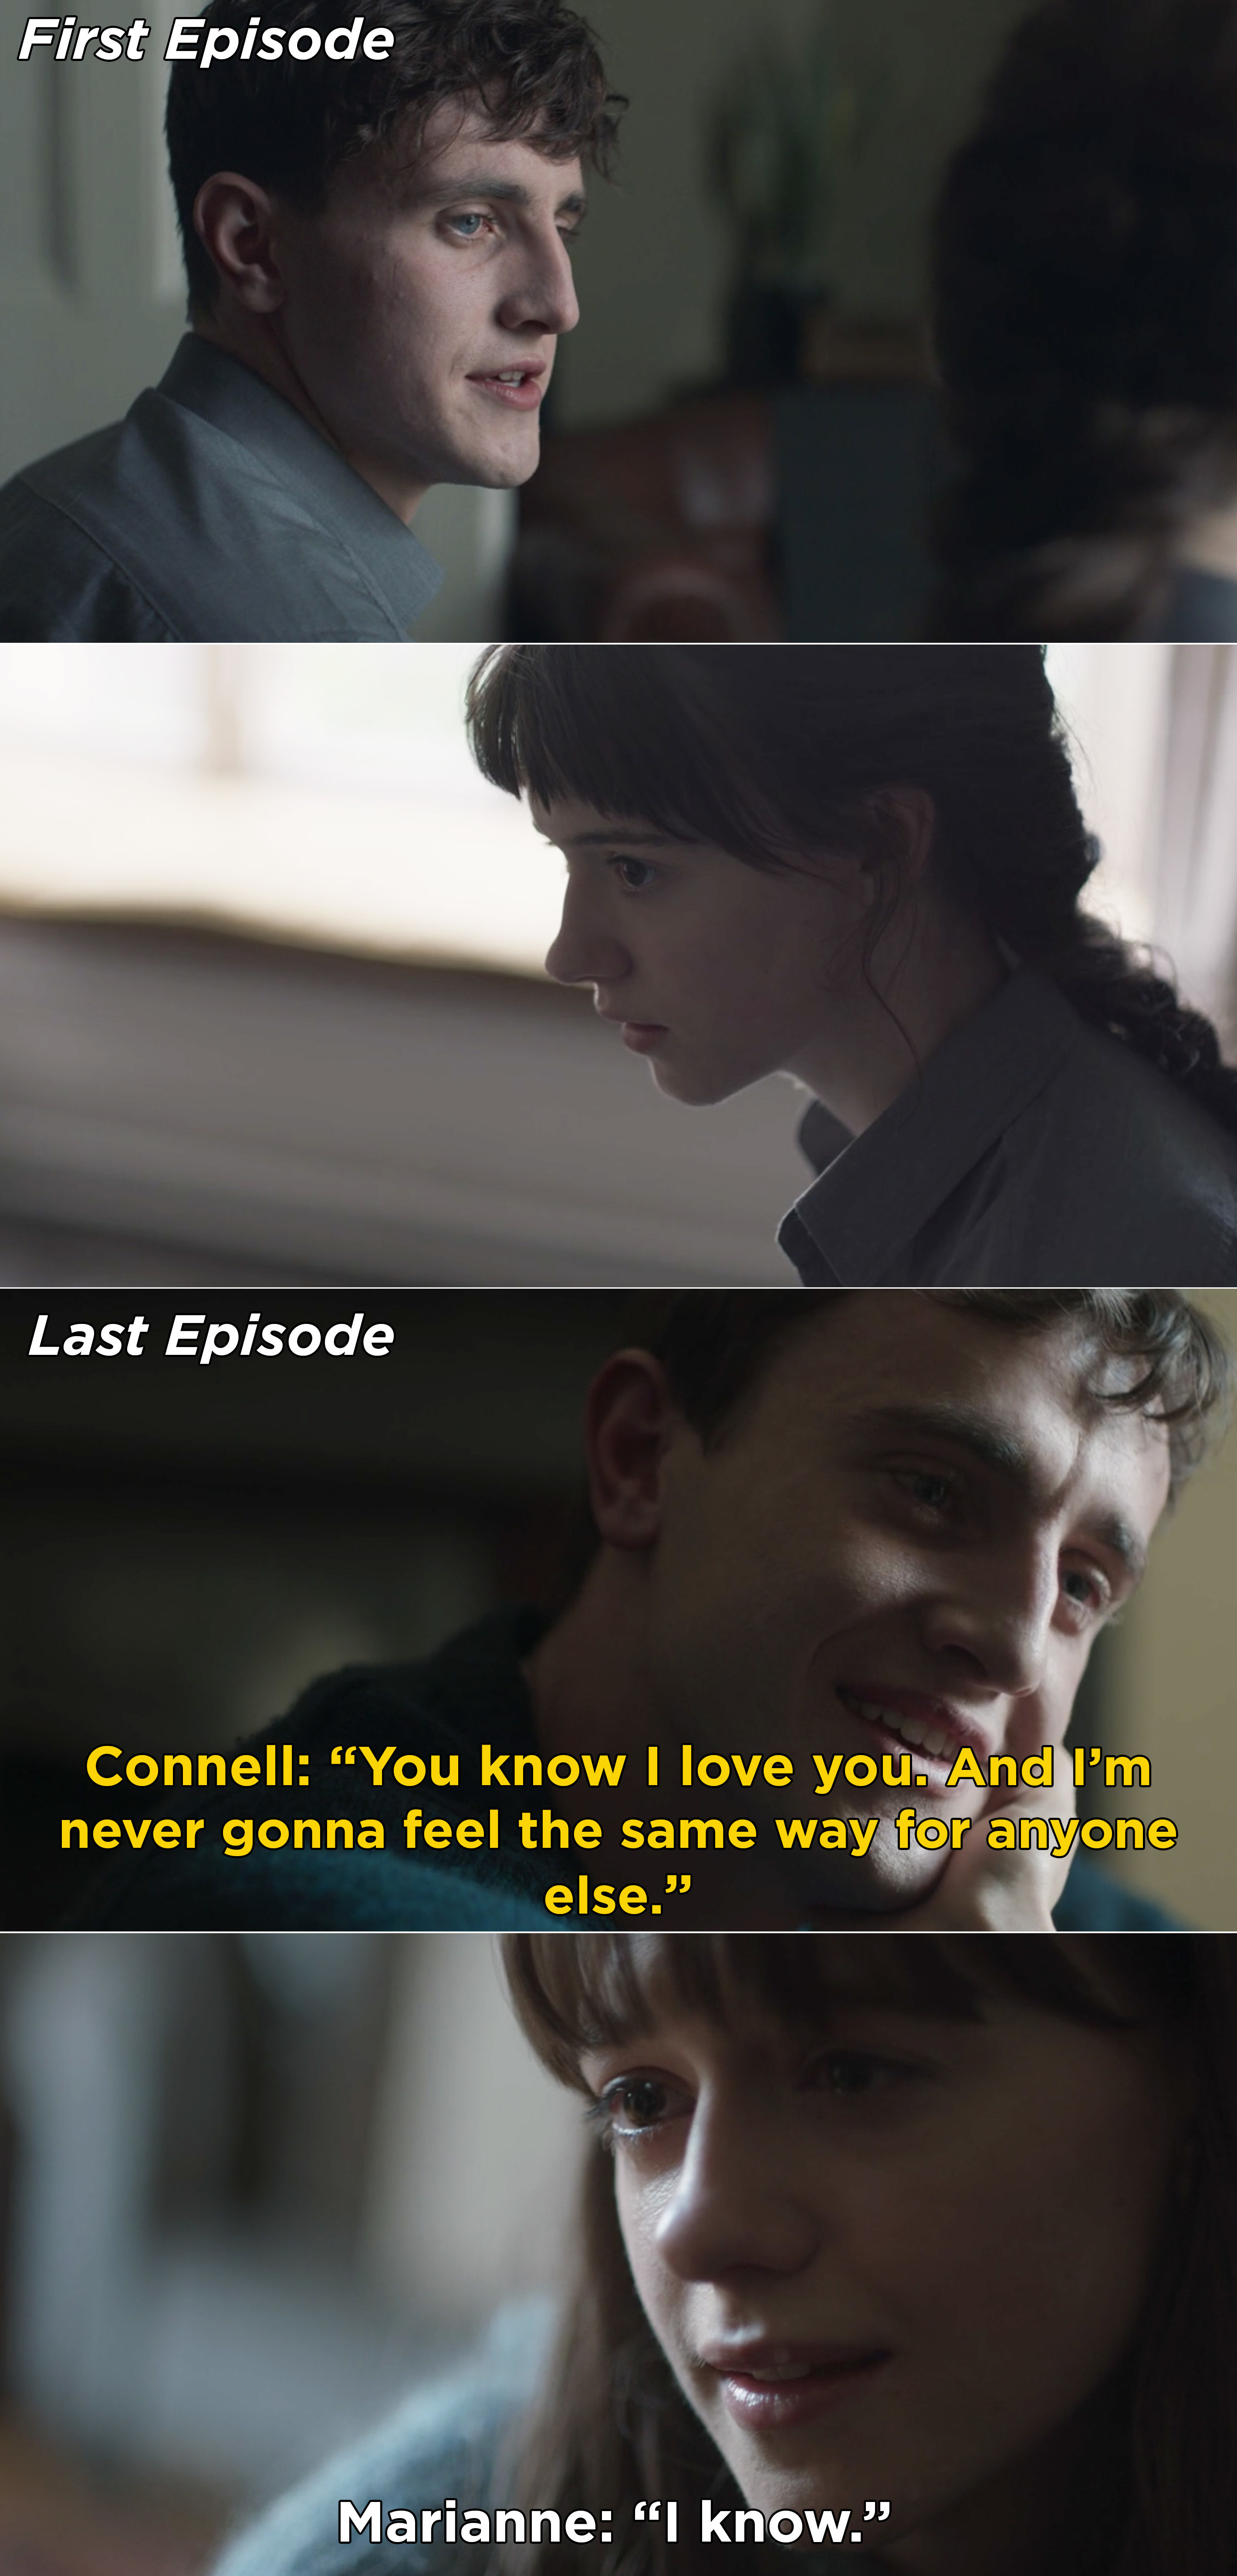 Connell and Marianna looking at each other, and Connell saying that he will always love her